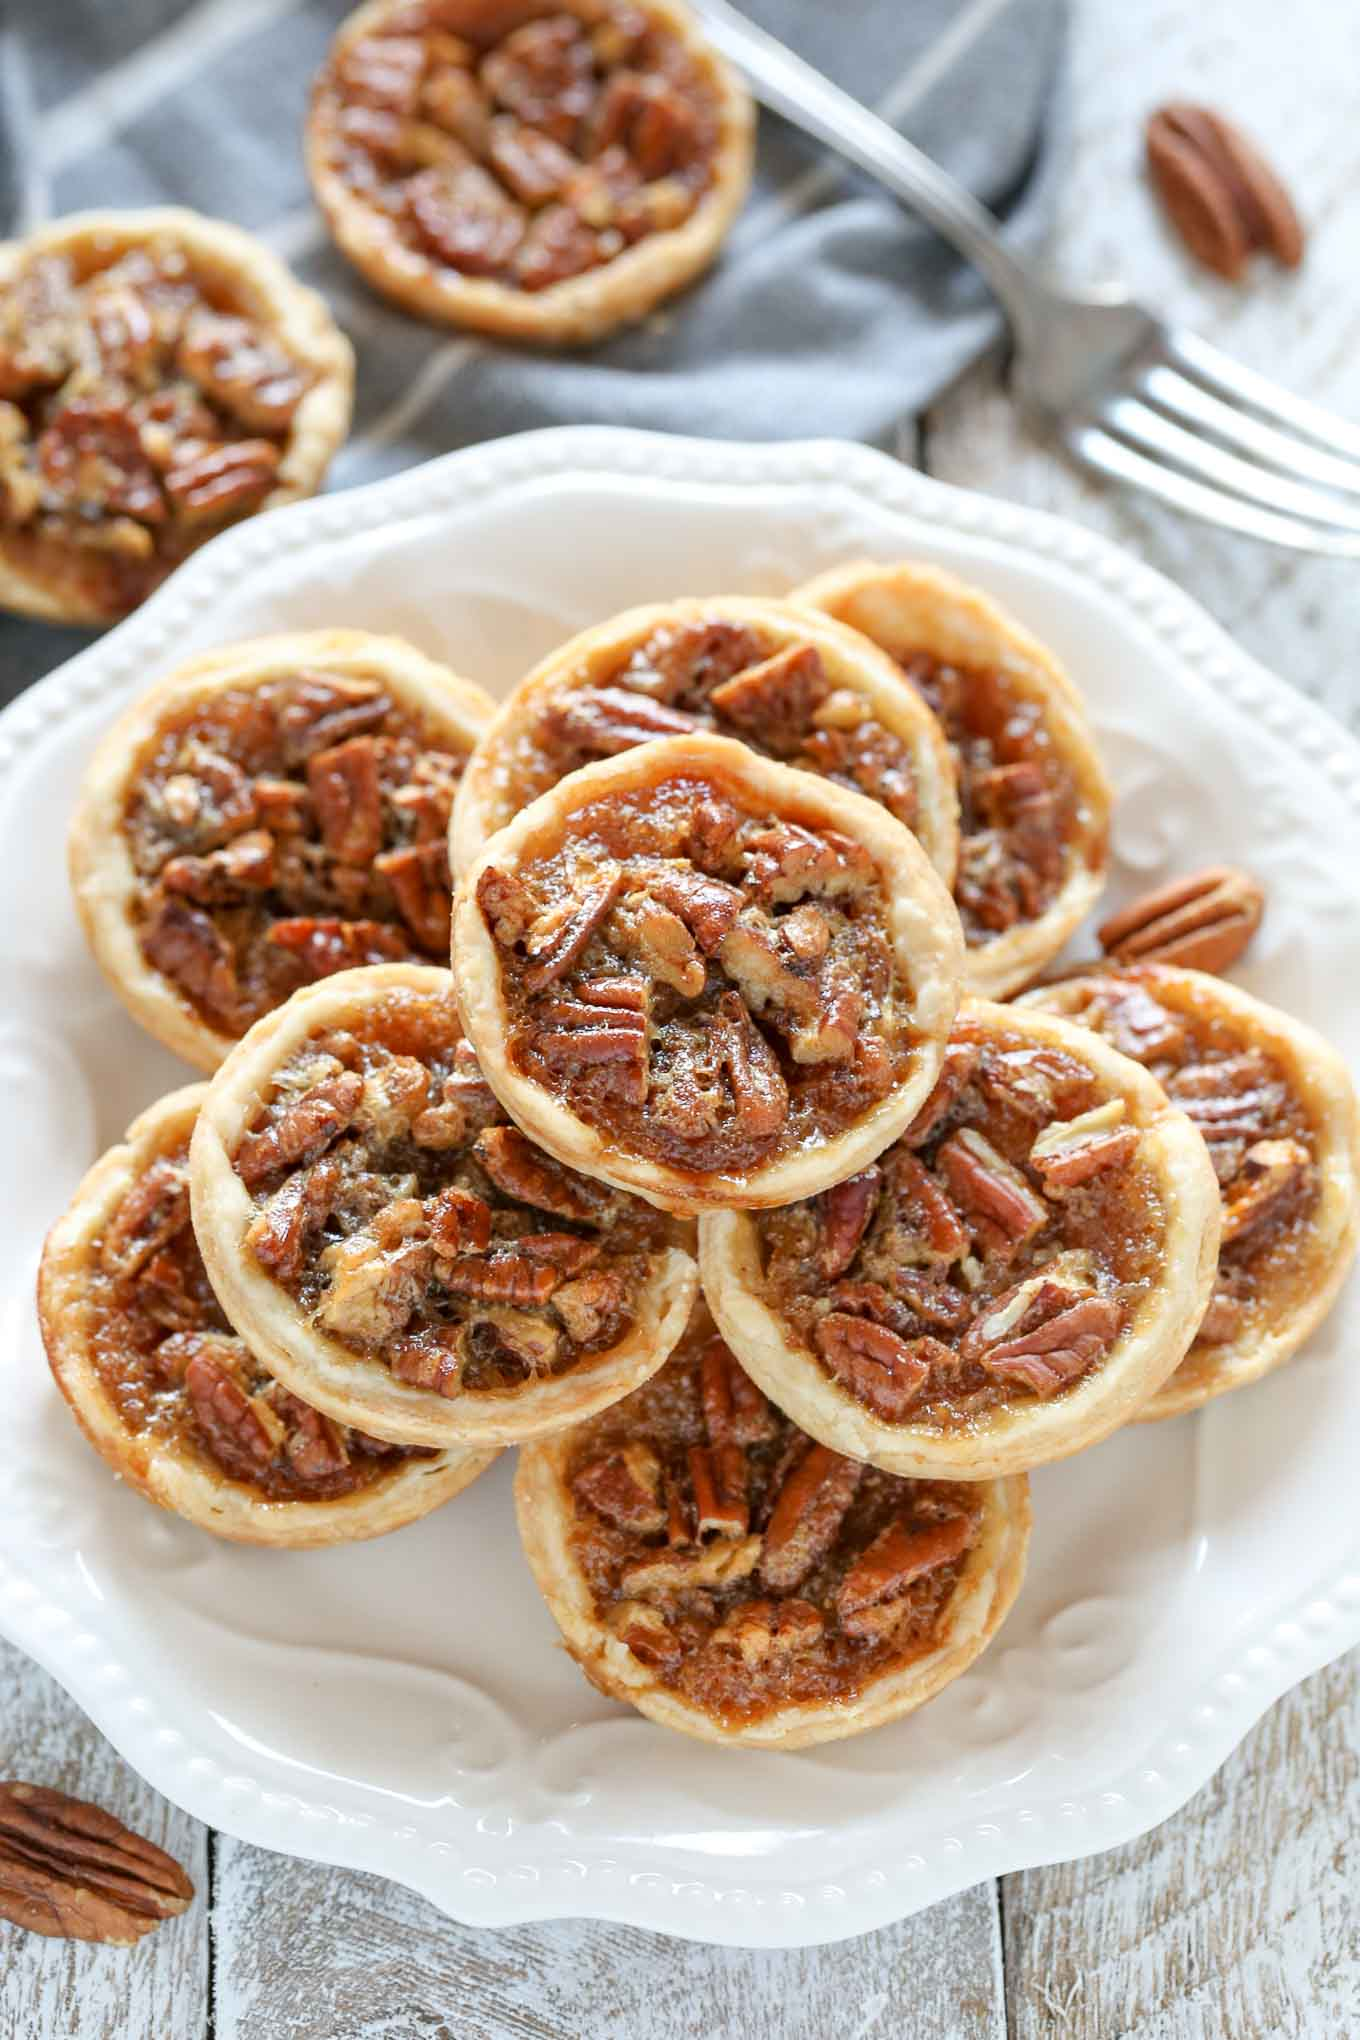 These Mini Pecan Pies are easy to make and can also be made ahead of time too. These are the perfect mini treat for Thanksgiving too!